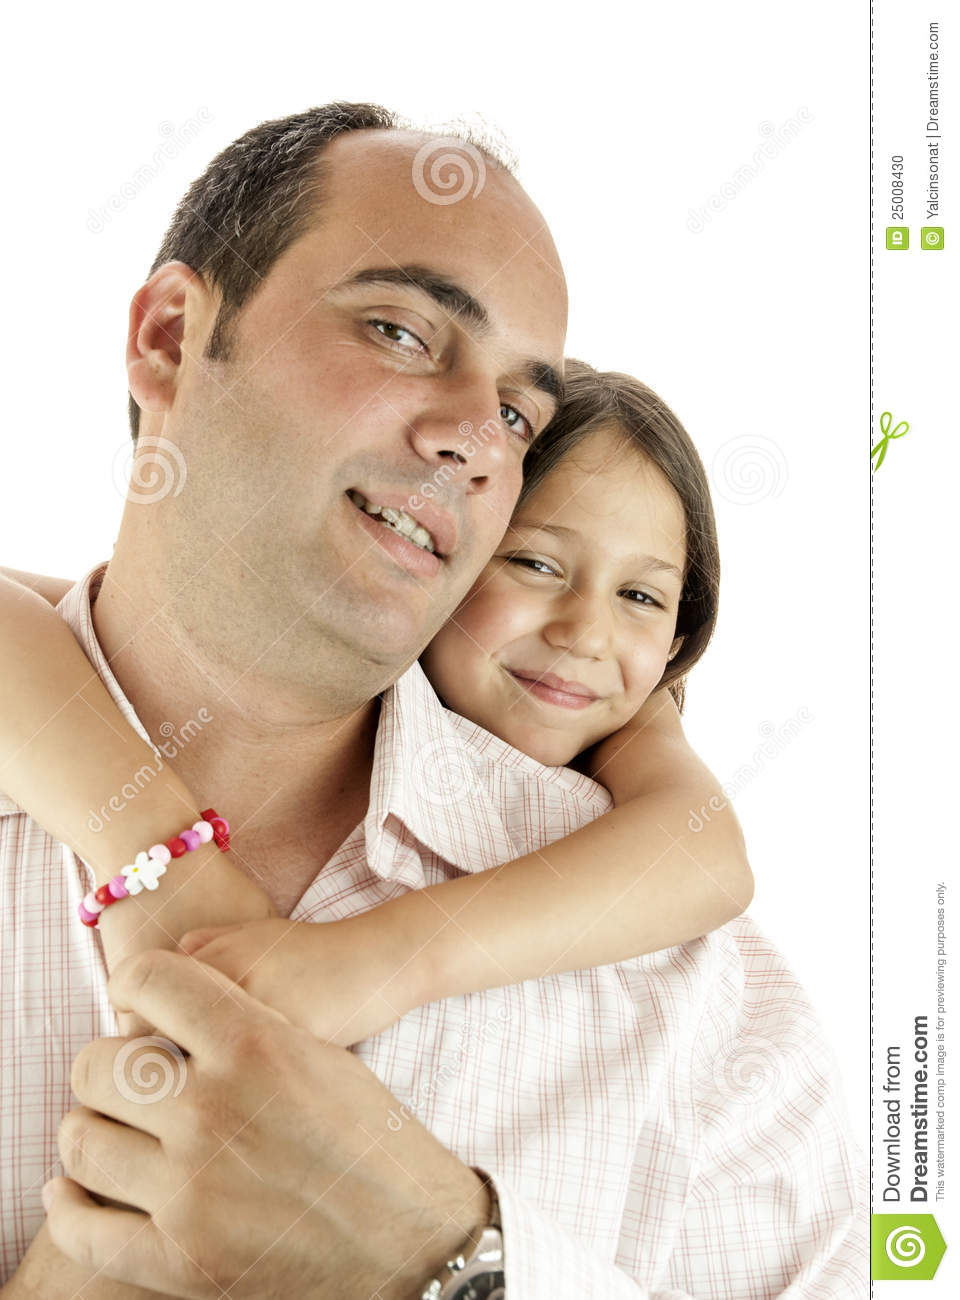 Father and daughter showing their love to each other.